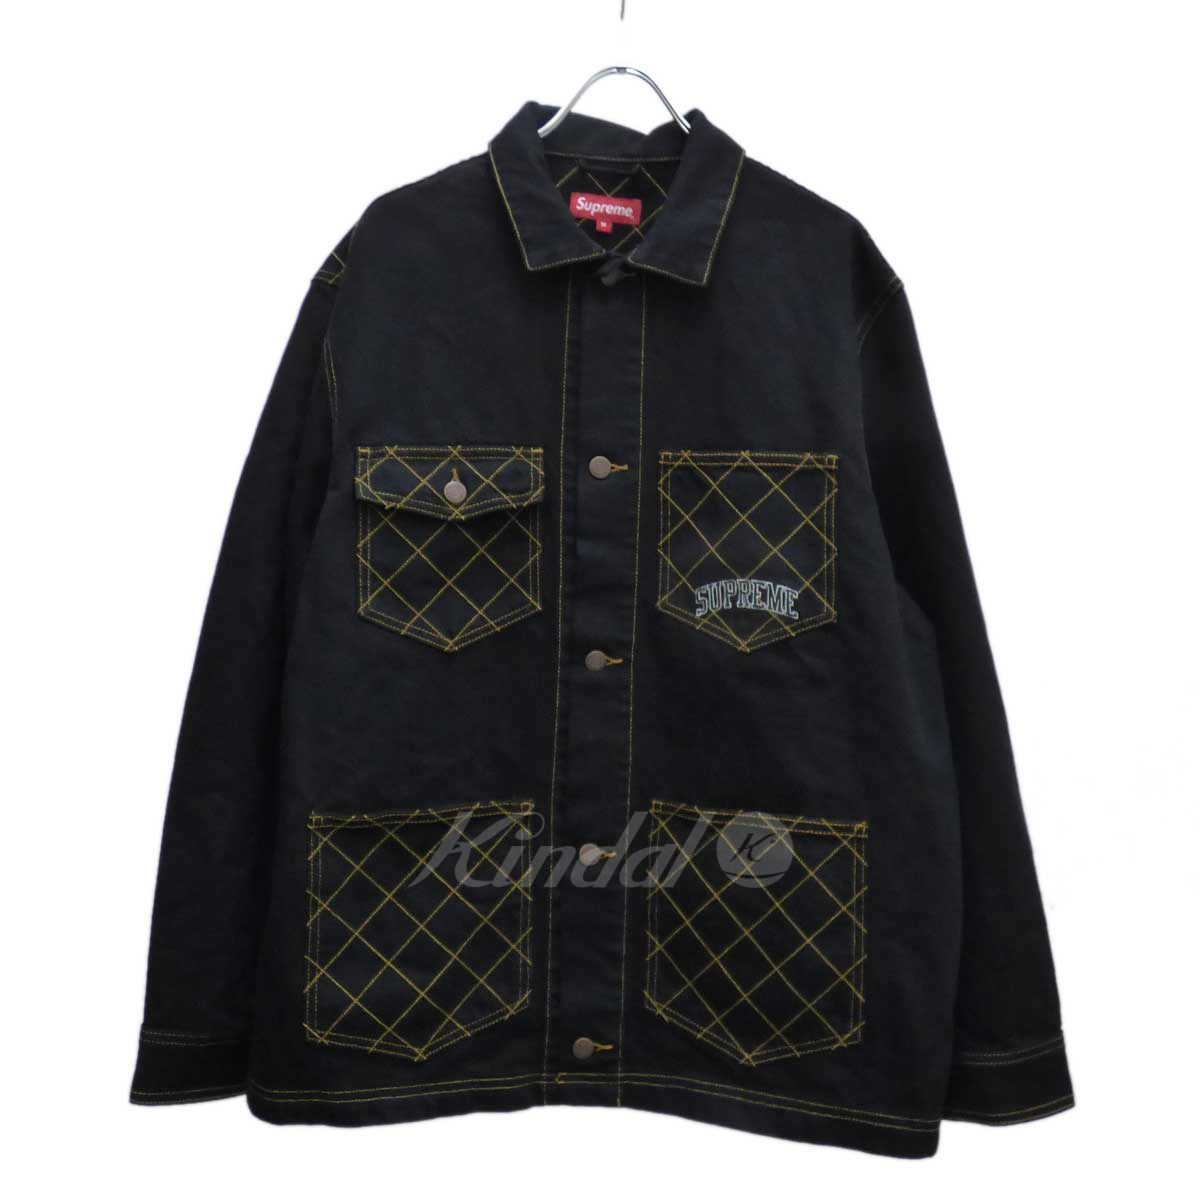 【中古】SUPREME Diamond Stitch Denim Chore Coat デニムコート 【送料無料】 【180509】 【KIND1551】